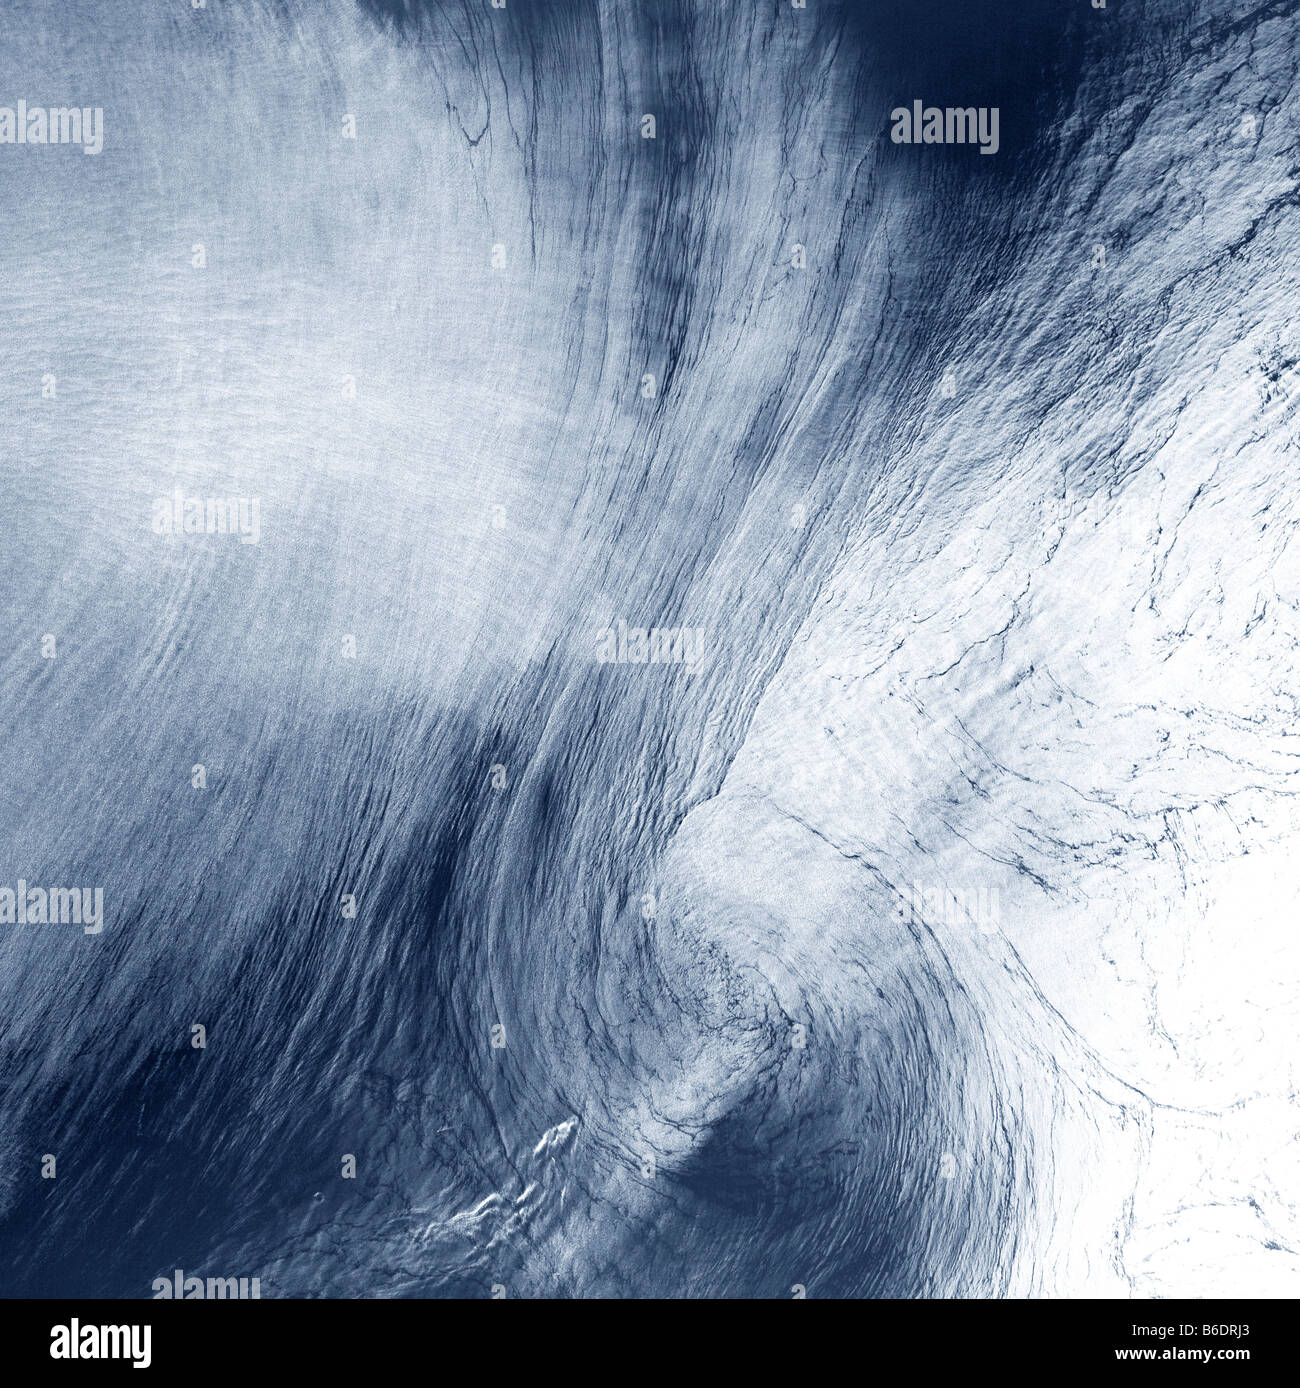 High-altitude clouds, satellite image. Theses wirling clouds are being shaped by high-altitude winds. - Stock Image